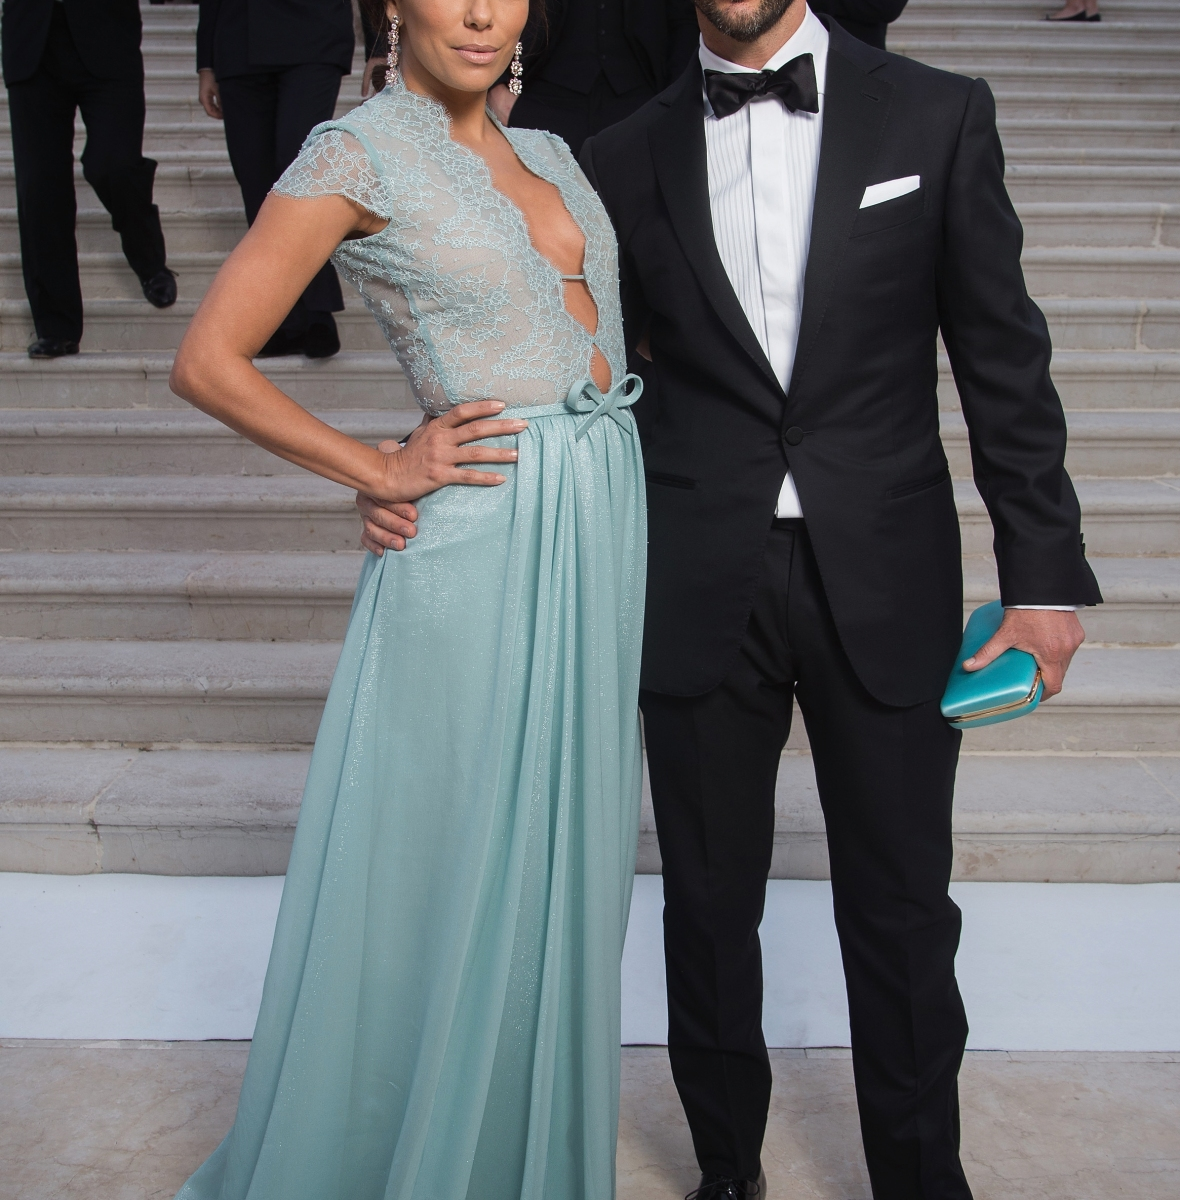 jose antonio baston eva longoria getty images